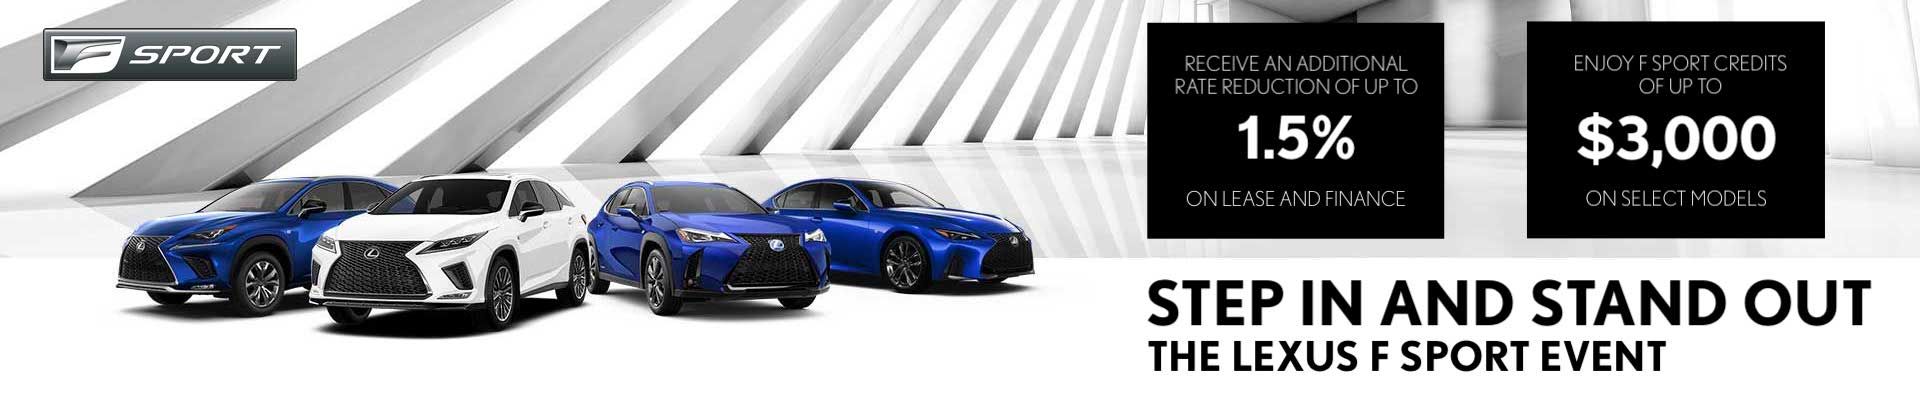 ken shaw lexus offers rate reduction promotion in toronto, ontario